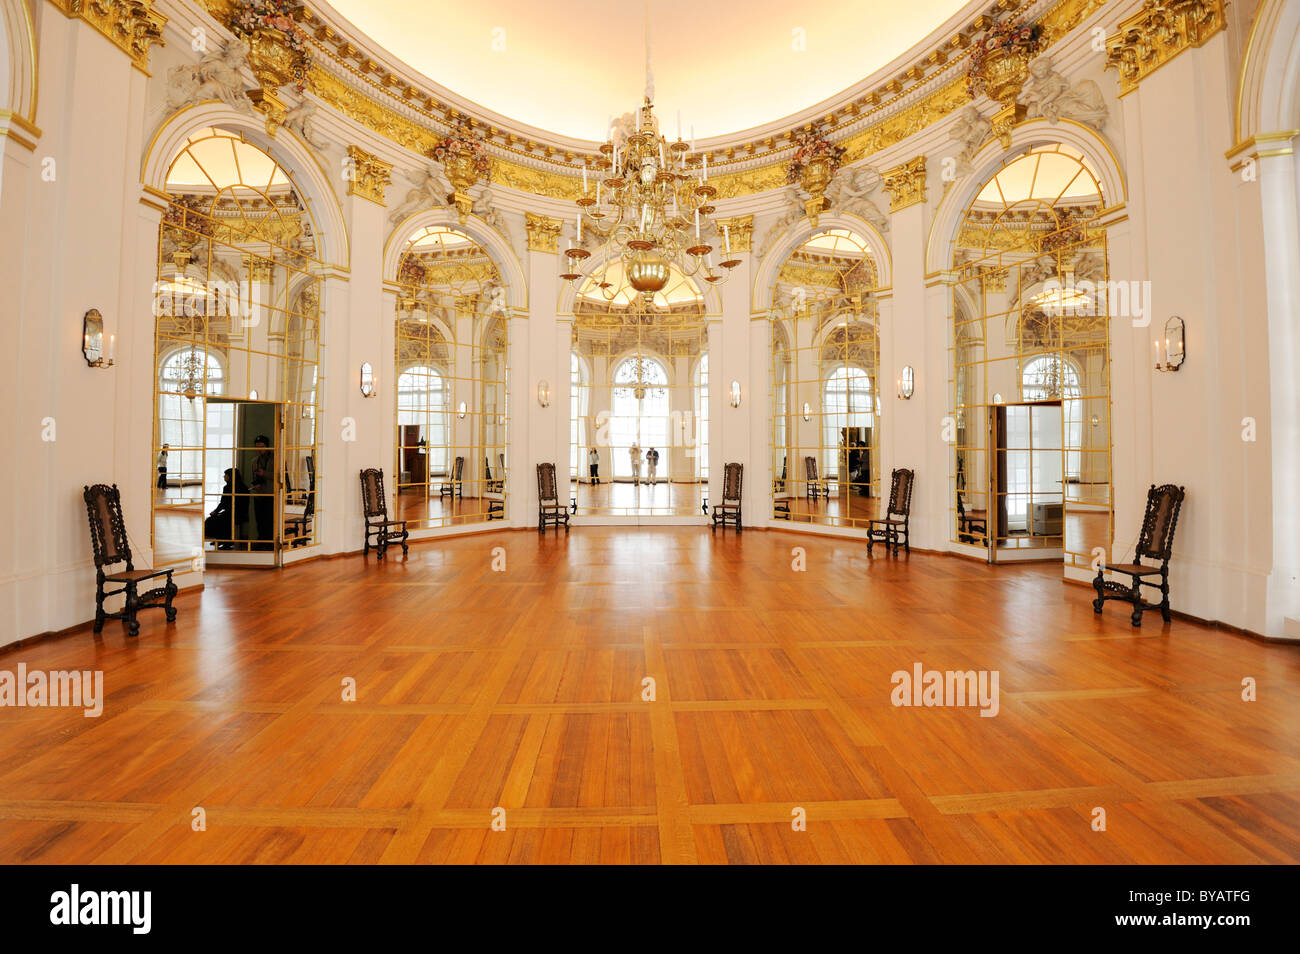 Oval Room in Schloss Charlottenburg Palace, Berlin, Germany, Europe - Stock Image